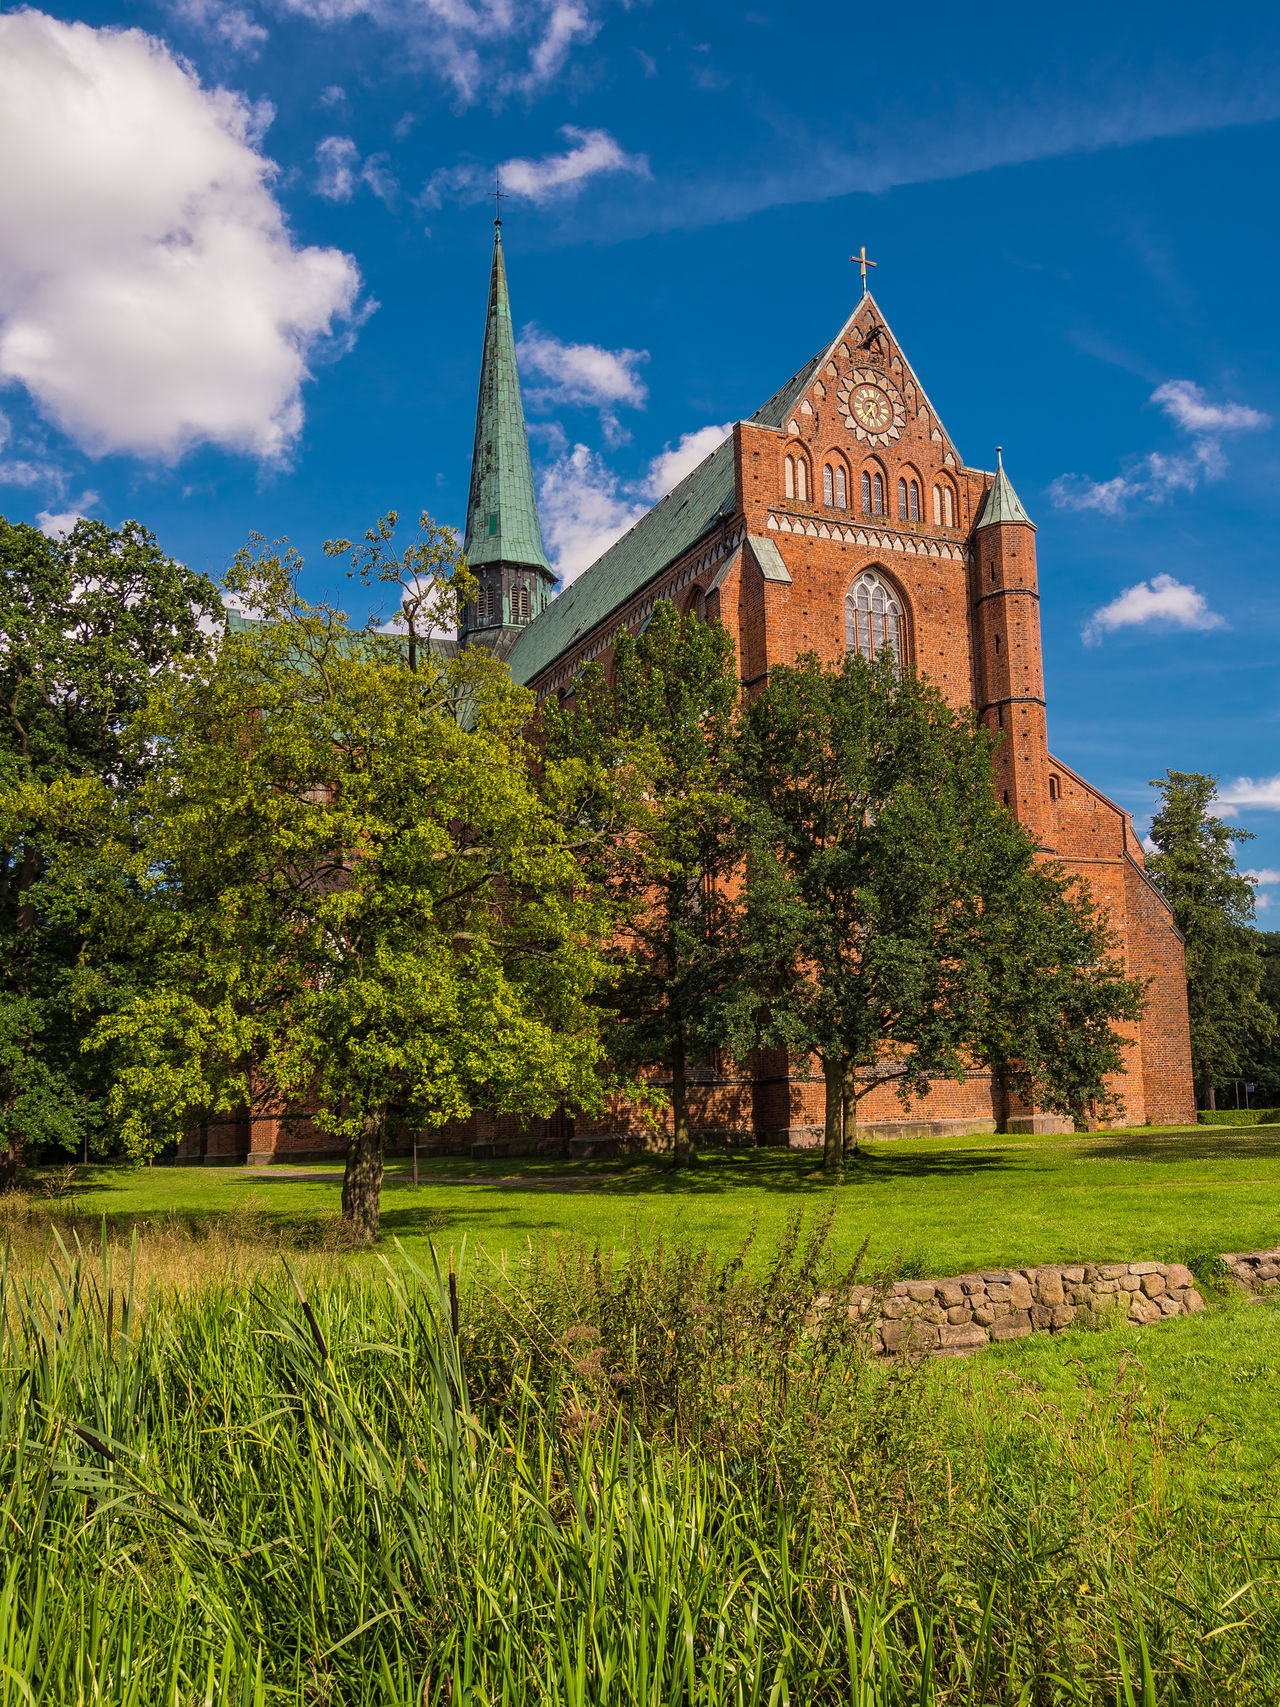 Cathedral in Bad Doberan, Germany. Architecture Bad Doberan Building Exterior Built Structure Cathedral Cloud - Sky Day History Landmark Landscape Minster Nature No People Outdoors Place Of Worship Sky Travel Destinations Tree